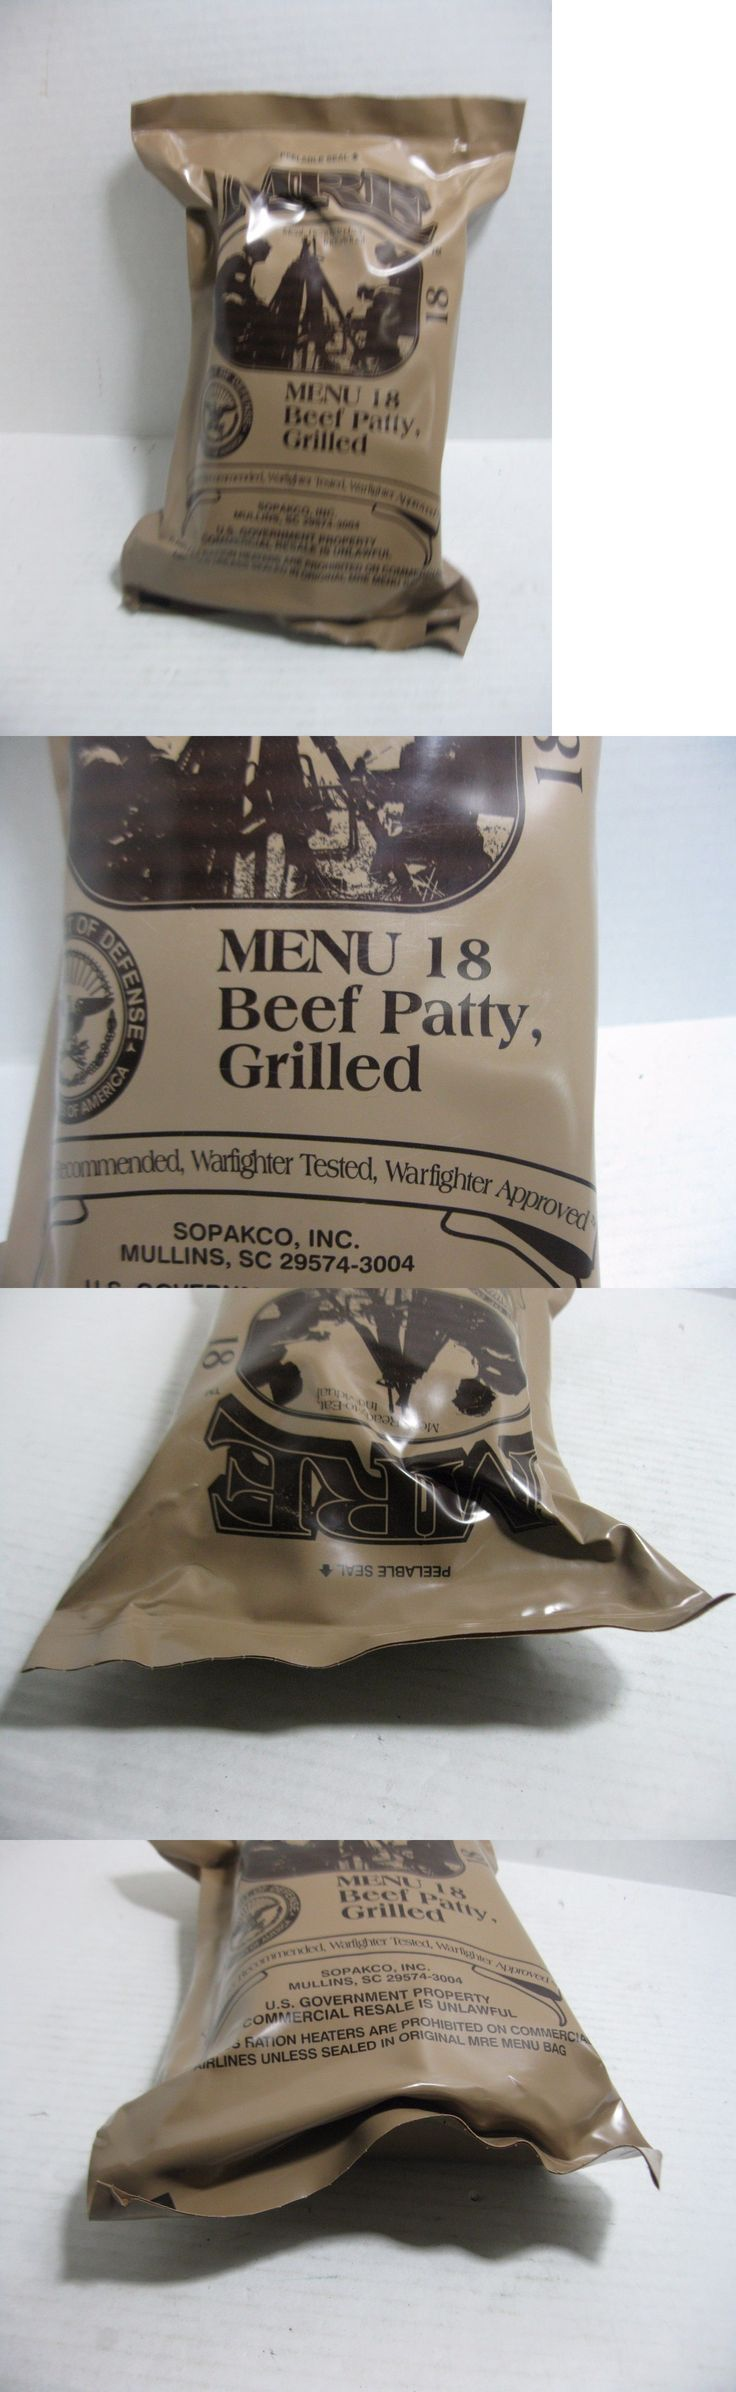 Food And Drink: Mre Menu 18 Grilled Beef Patty Sealed Ready To Eat Meal Individual BUY IT NOW ONLY: $19.95